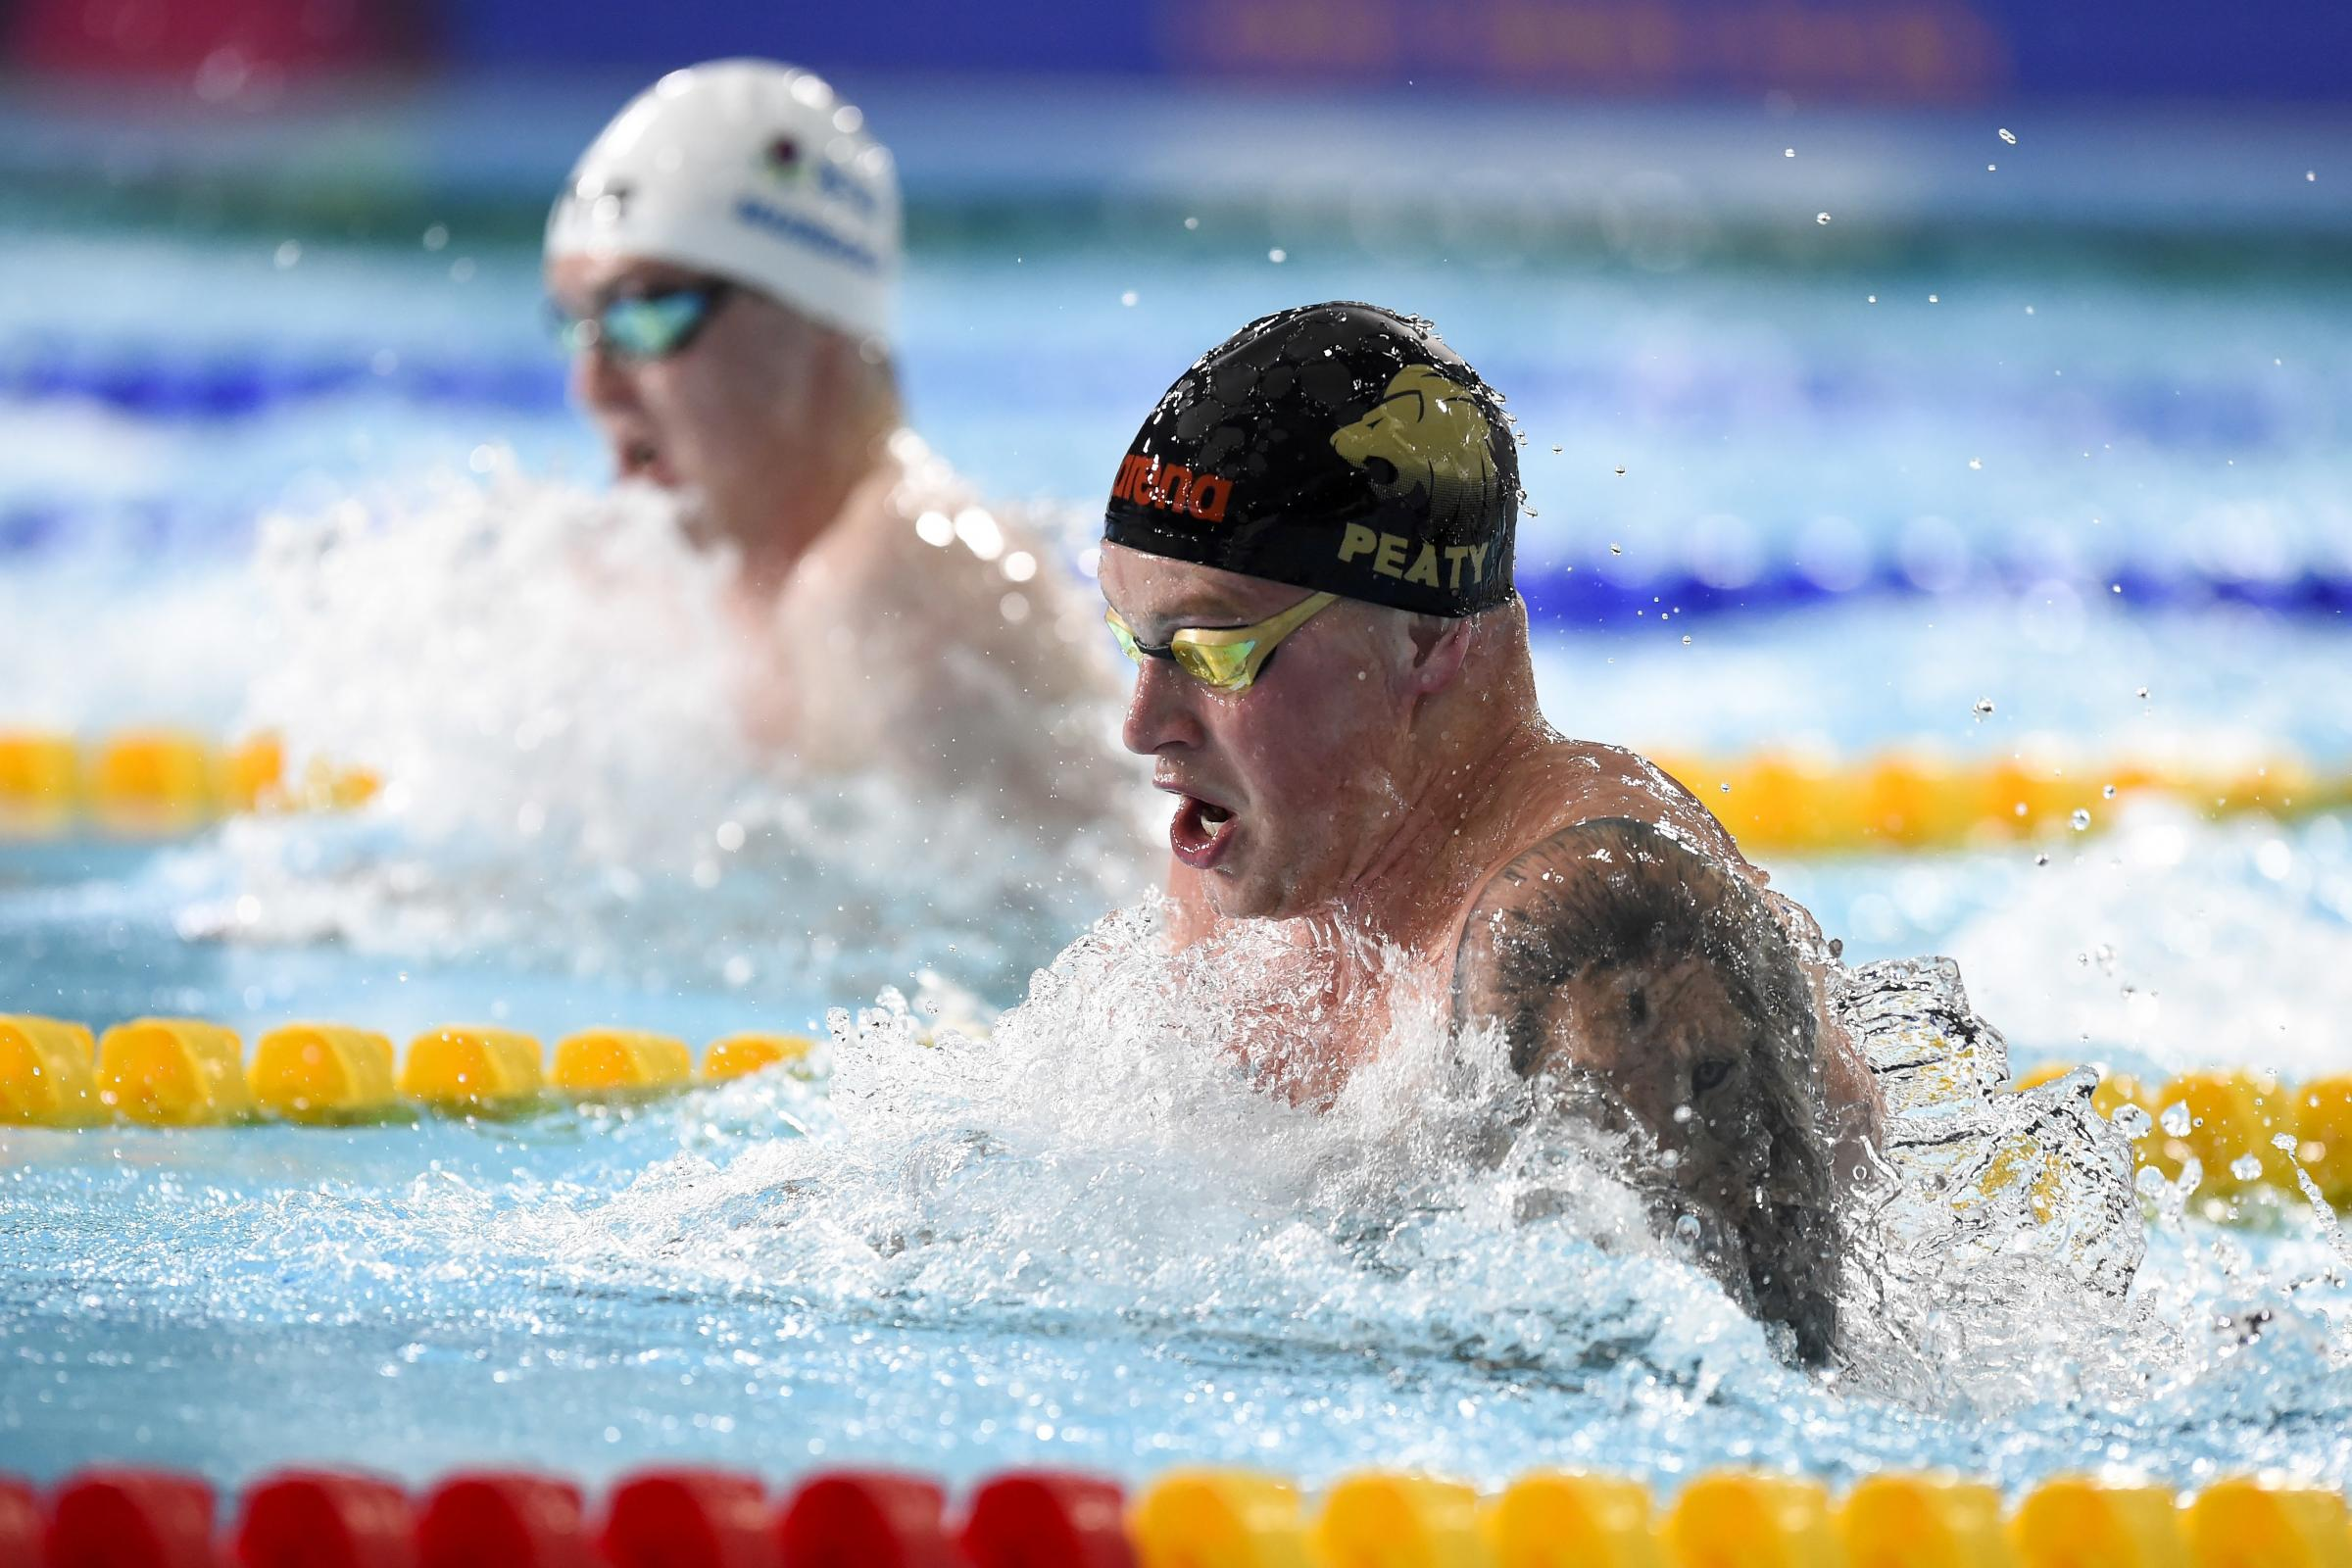 Adam Peaty won the 50m breaststroke for his second gold medal of the Birtish Championships in Glasgow